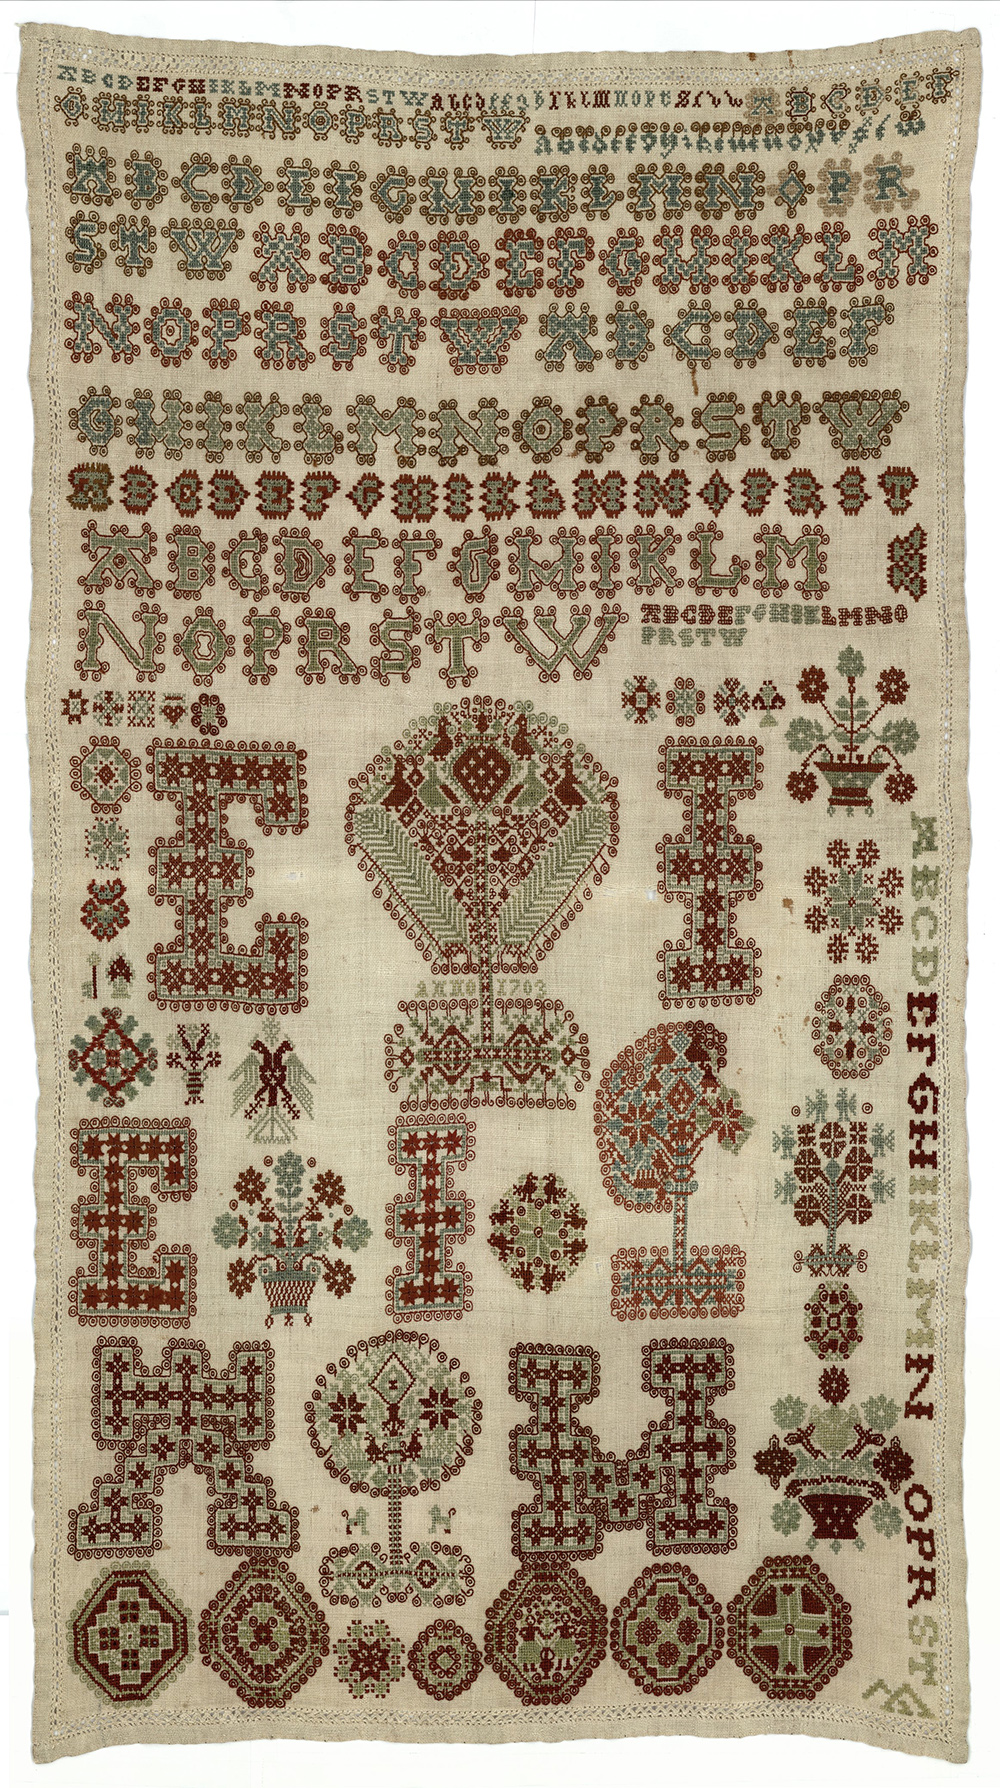 Frisian Embroidery Sampler, early 18th century